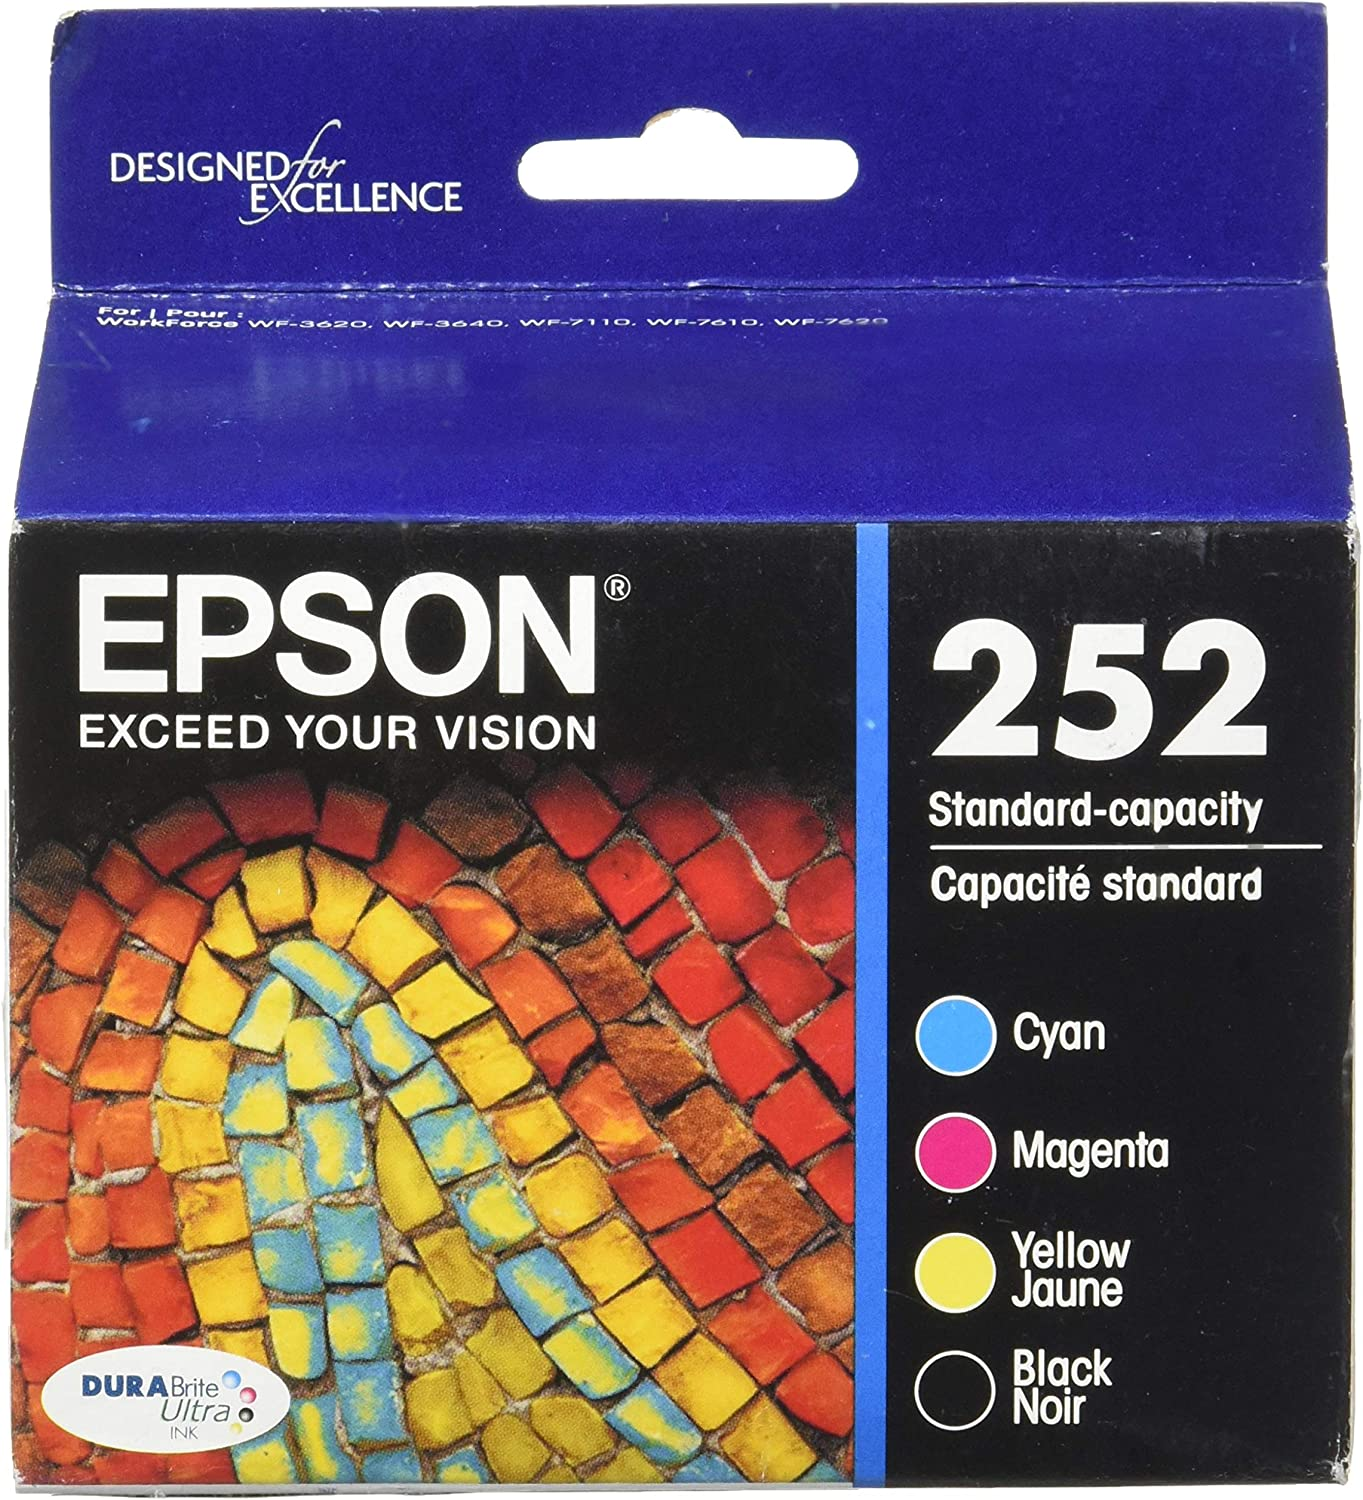 Epson DURABrite Ultra Ink T252120-BCS Ink Cartridge - Cyan, Black, Magenta, Yellow